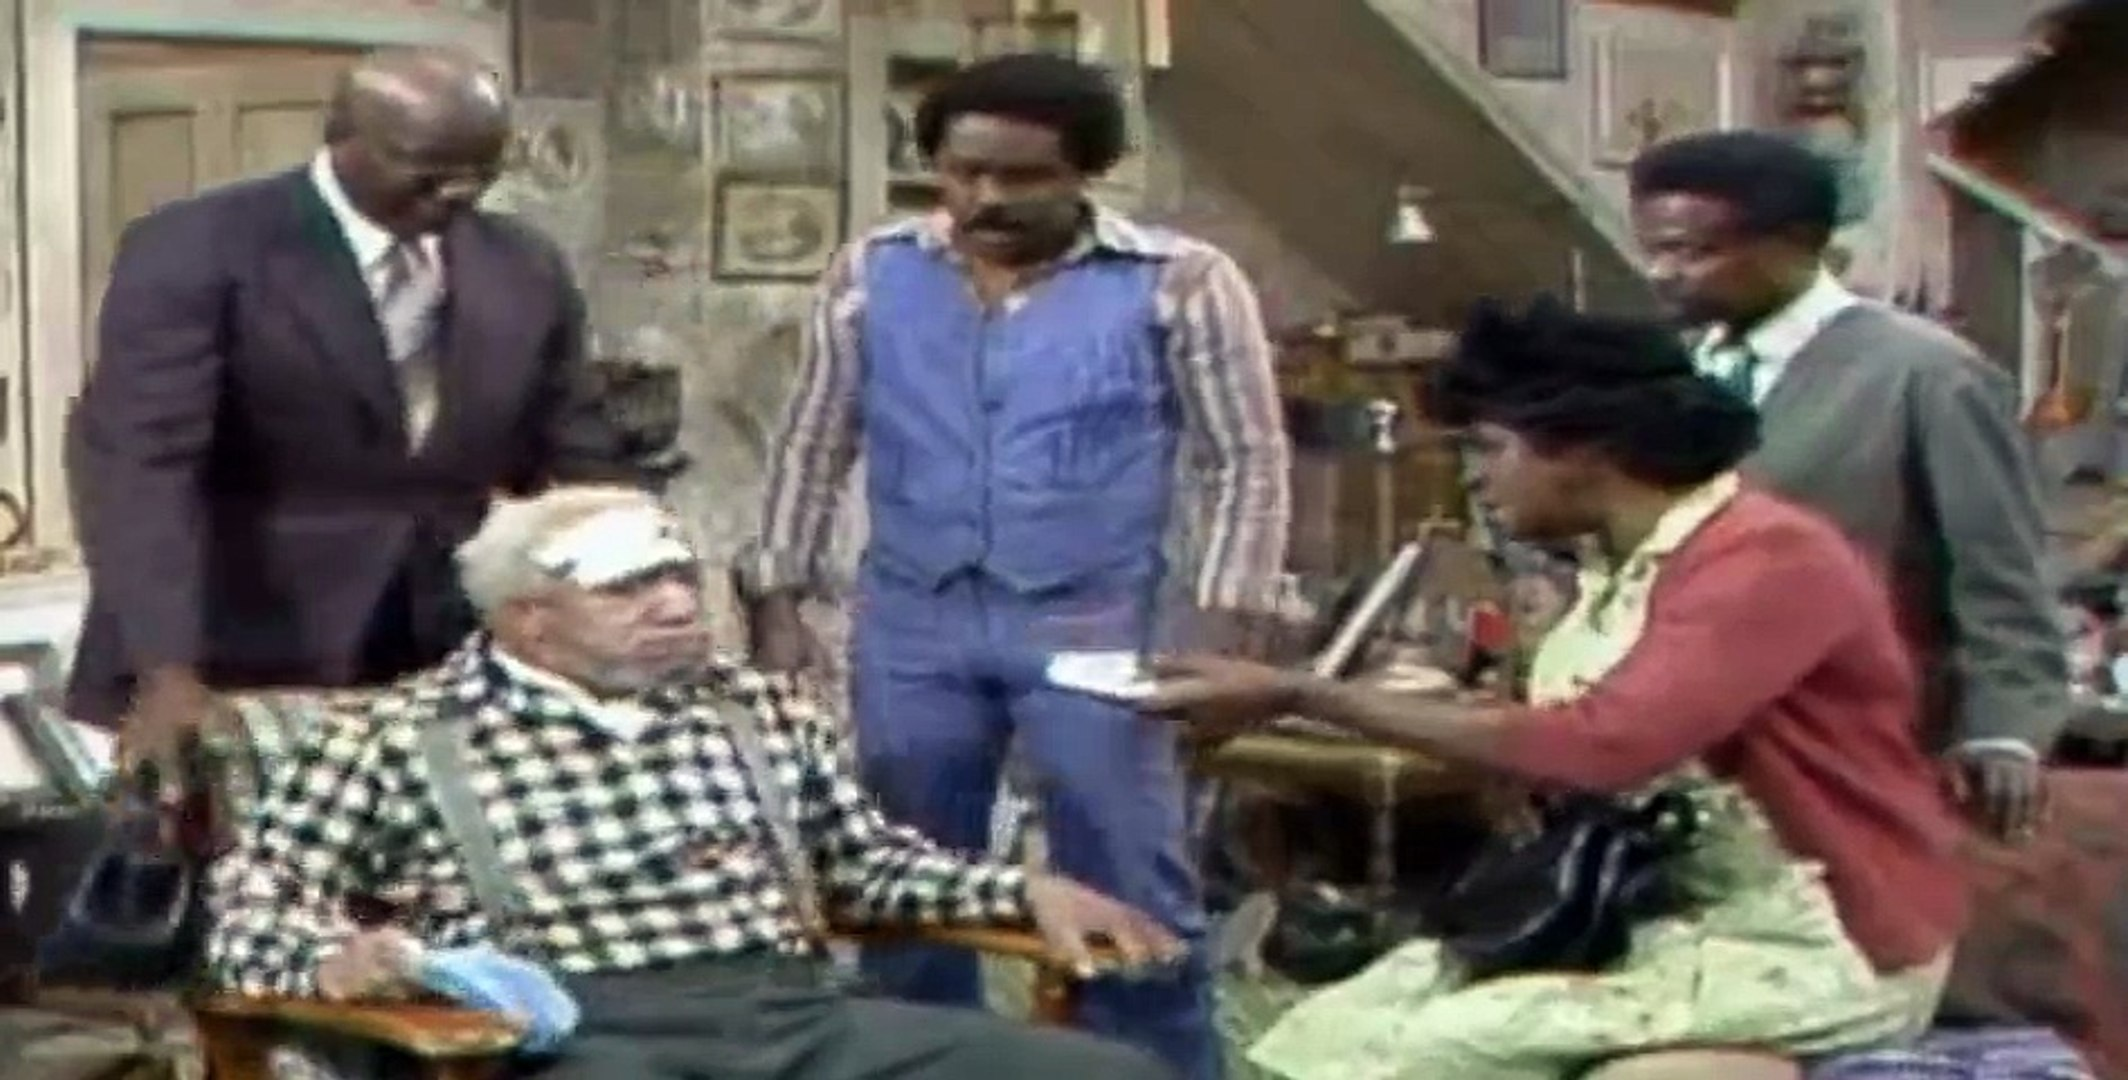 Sanford and Son S06 - Ep18 The Reverend Sanford HD Watch